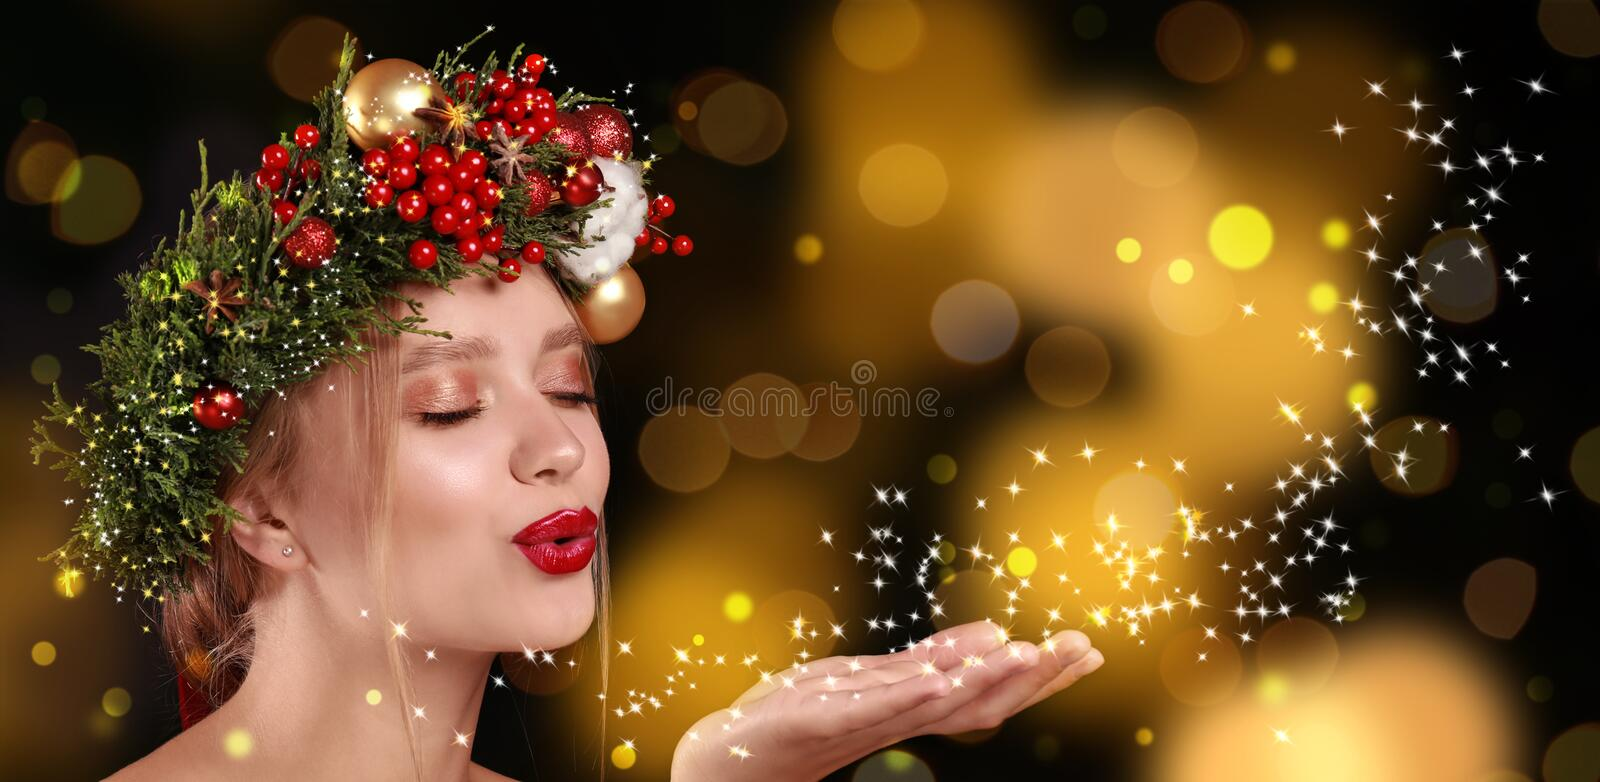 Beautiful young woman with Christmas wreath blowing magical snowy dust on color background. Bokeh effect royalty free stock images